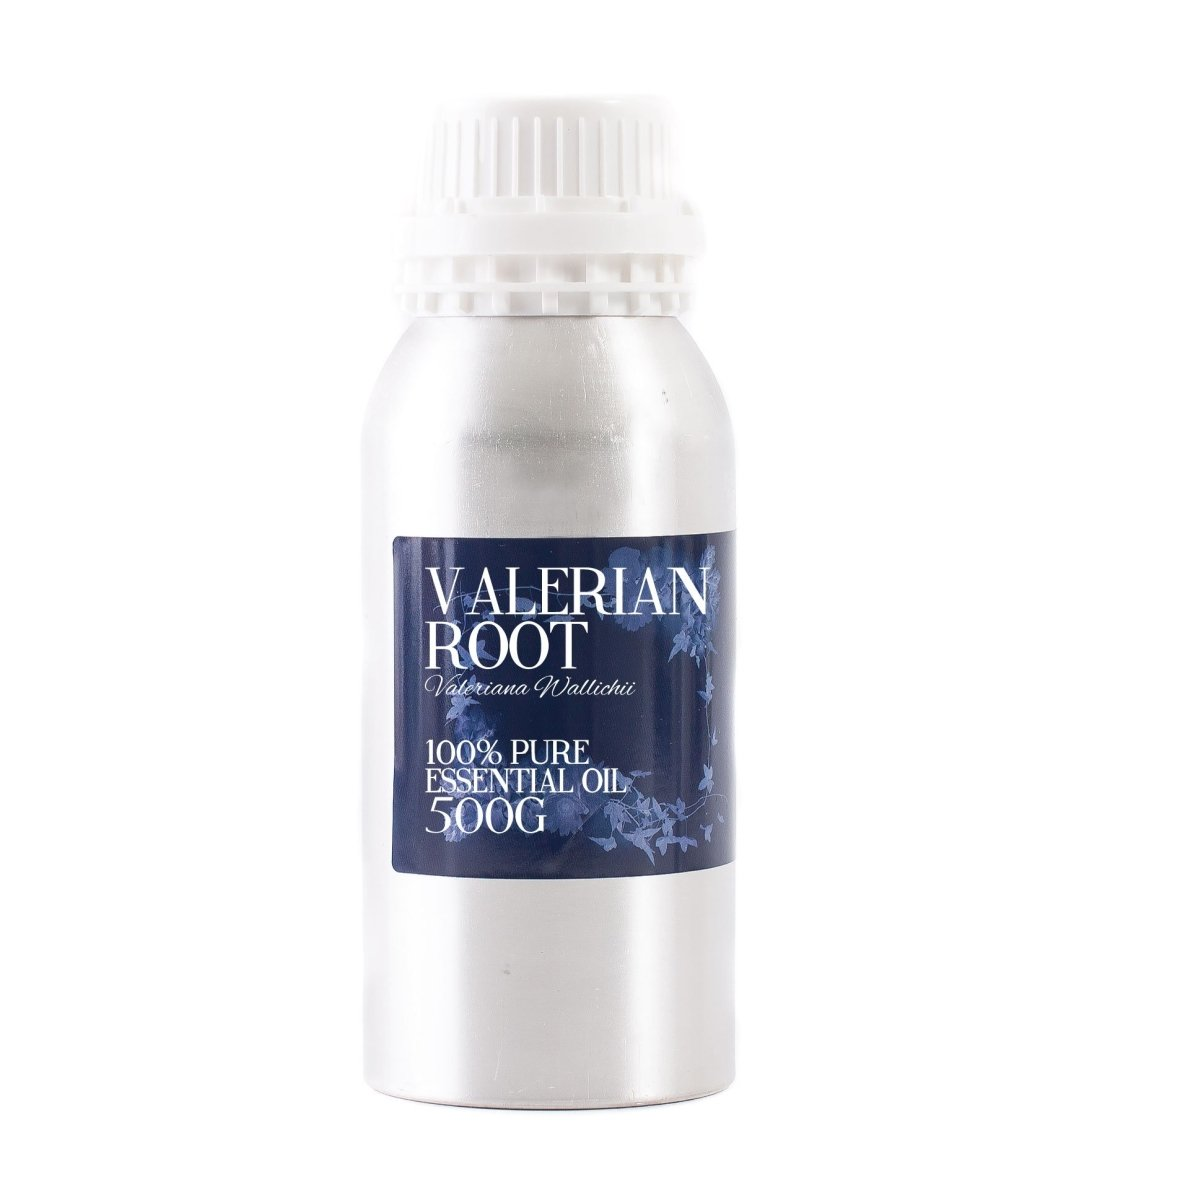 Valerian Root Essential Oil - Mystic Moments UK